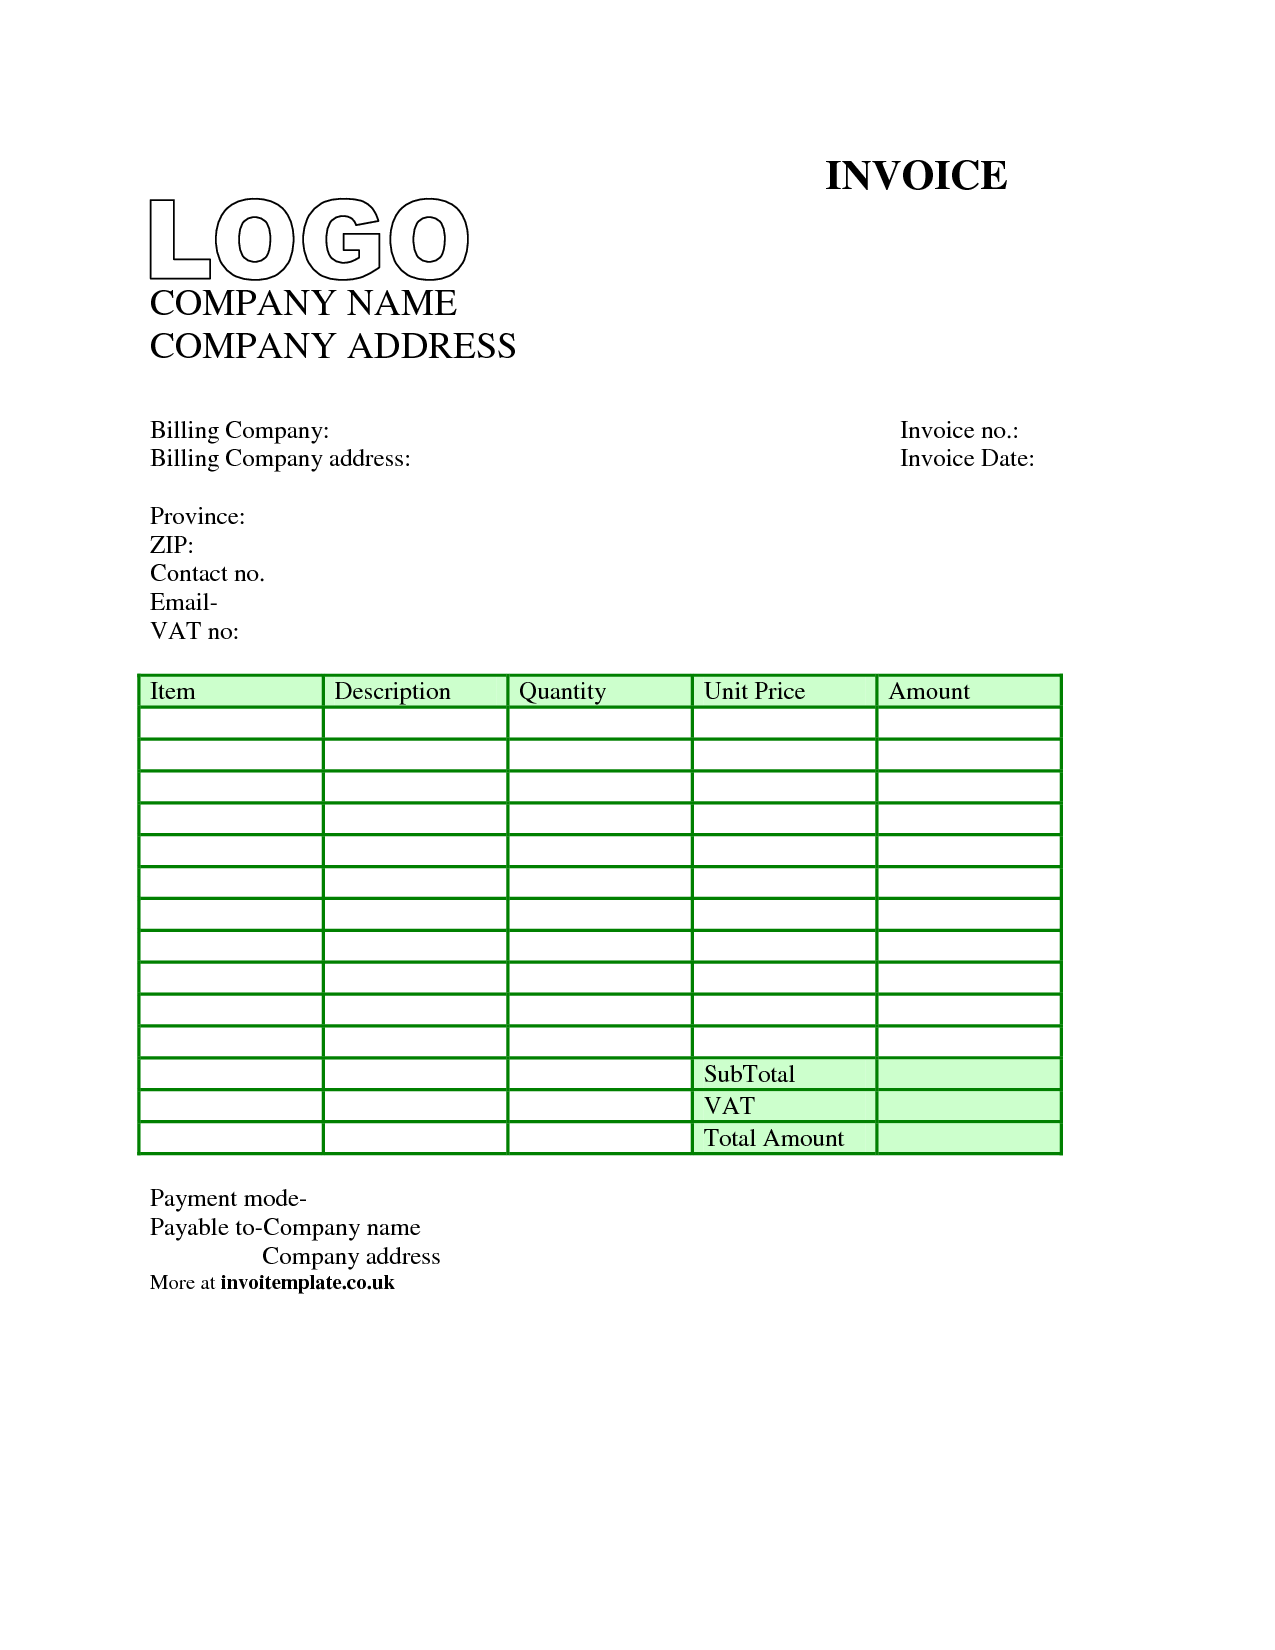 Invoice Template Word Doc Uk wiseproofnet – Sample Invoice Word Doc